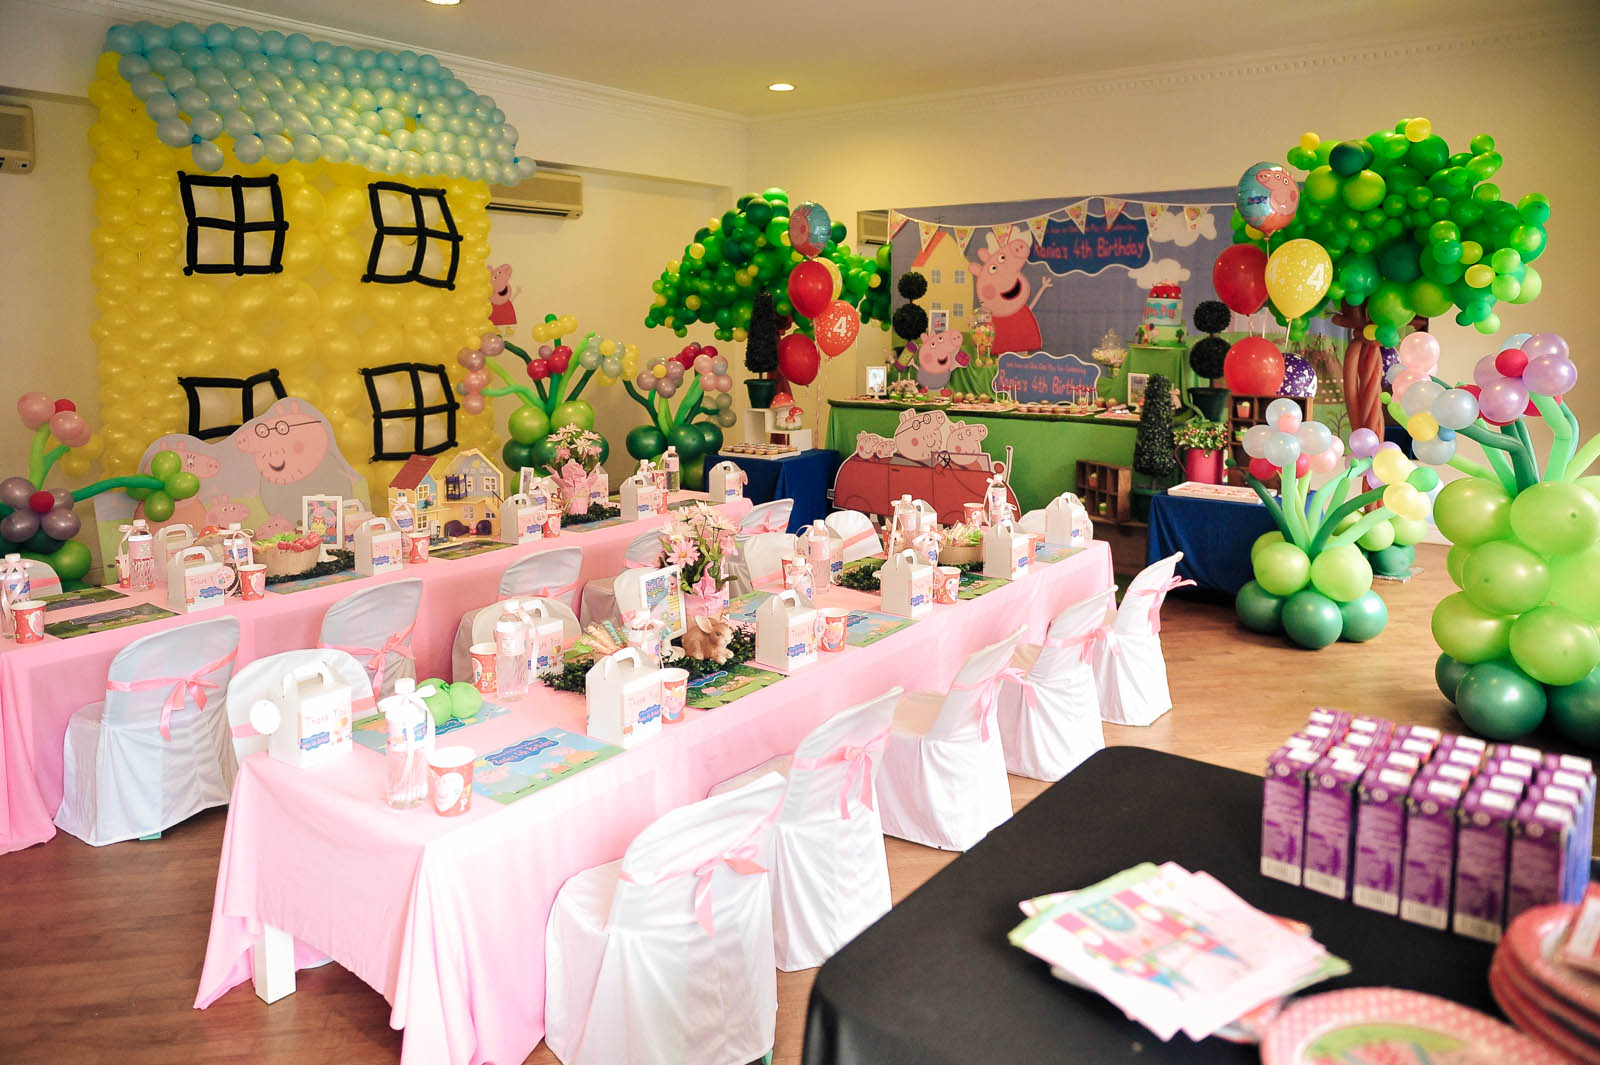 Theme peppa pig its more than just a party Www home decor ideas